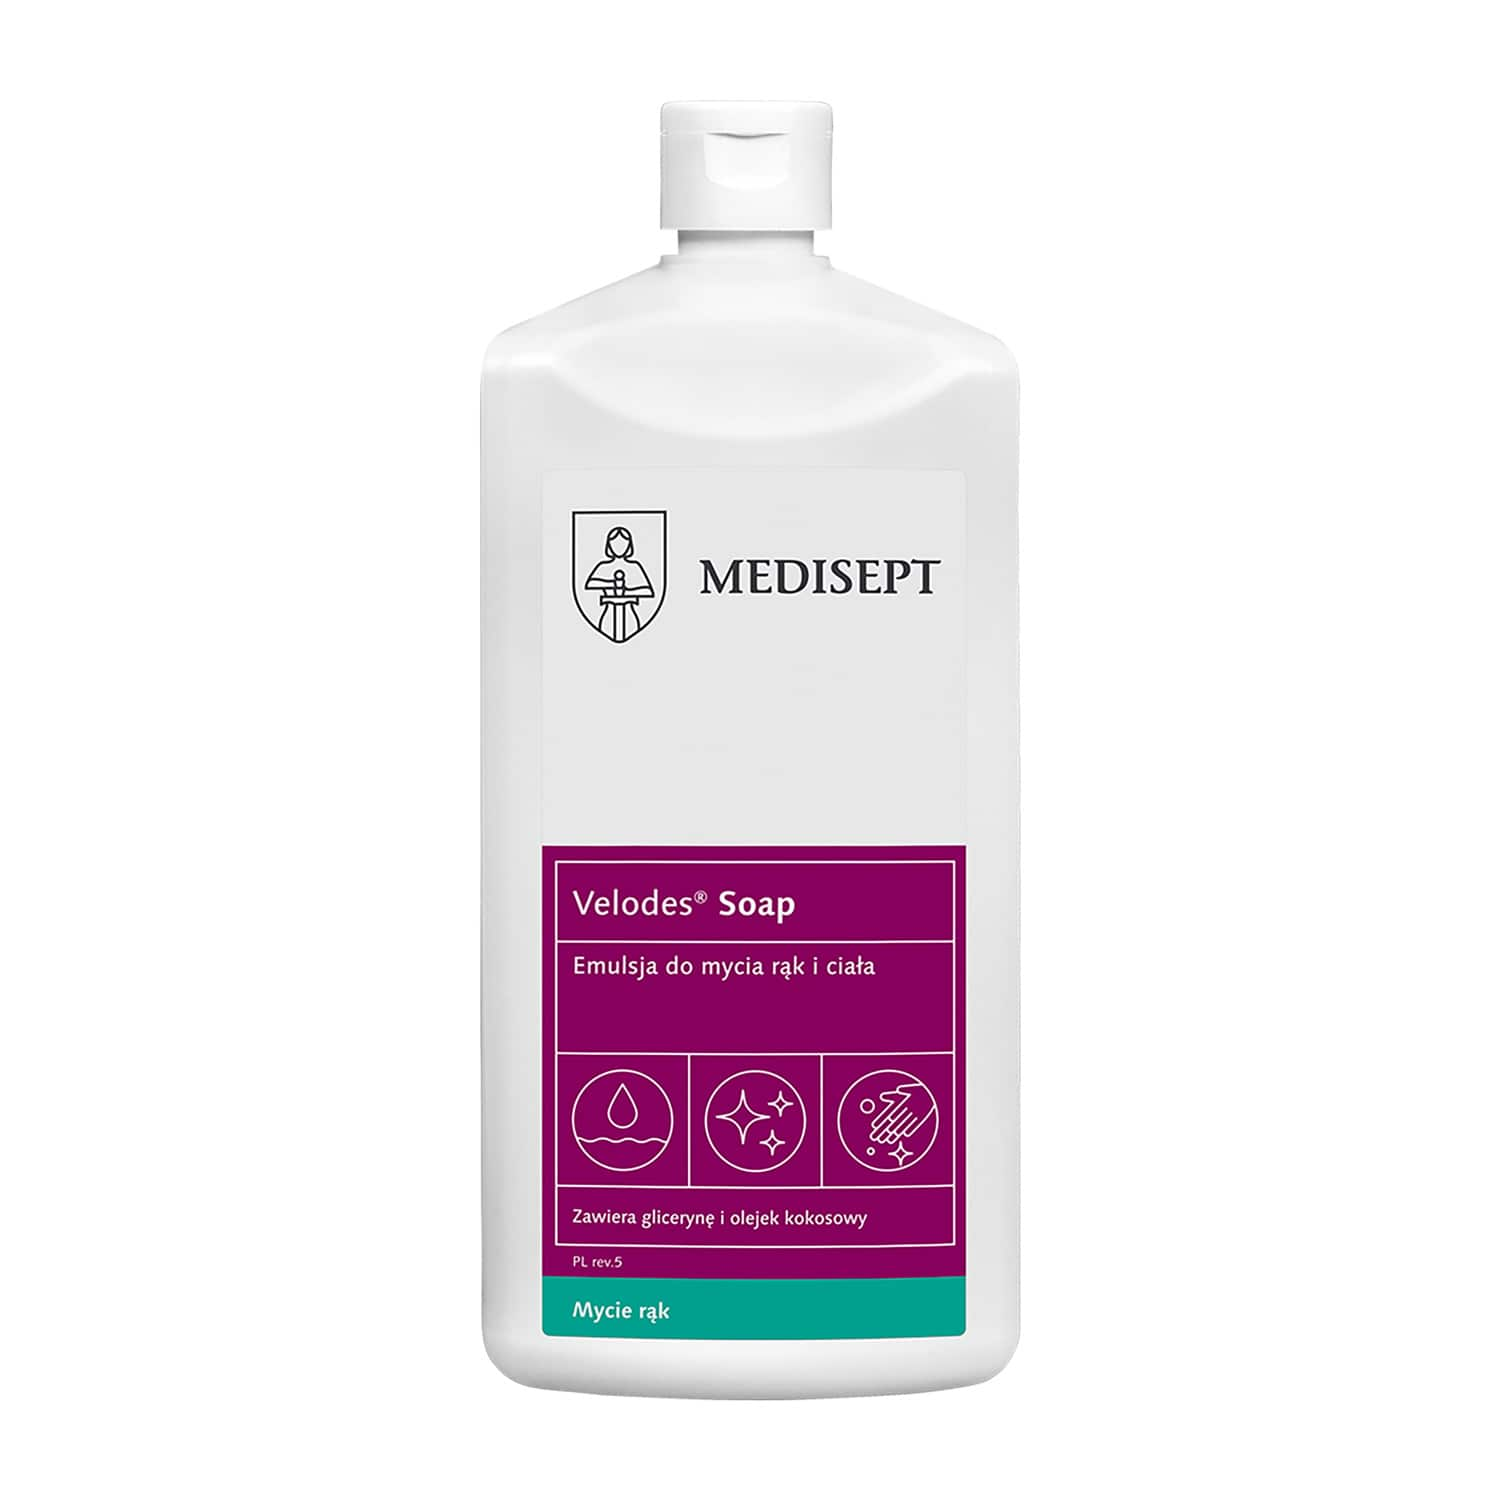 https://static.praxisdienst.com/out/pictures/generated/product/1/1500_1500_100/138205_medisept_velodes_soap_500ml_web.jpg